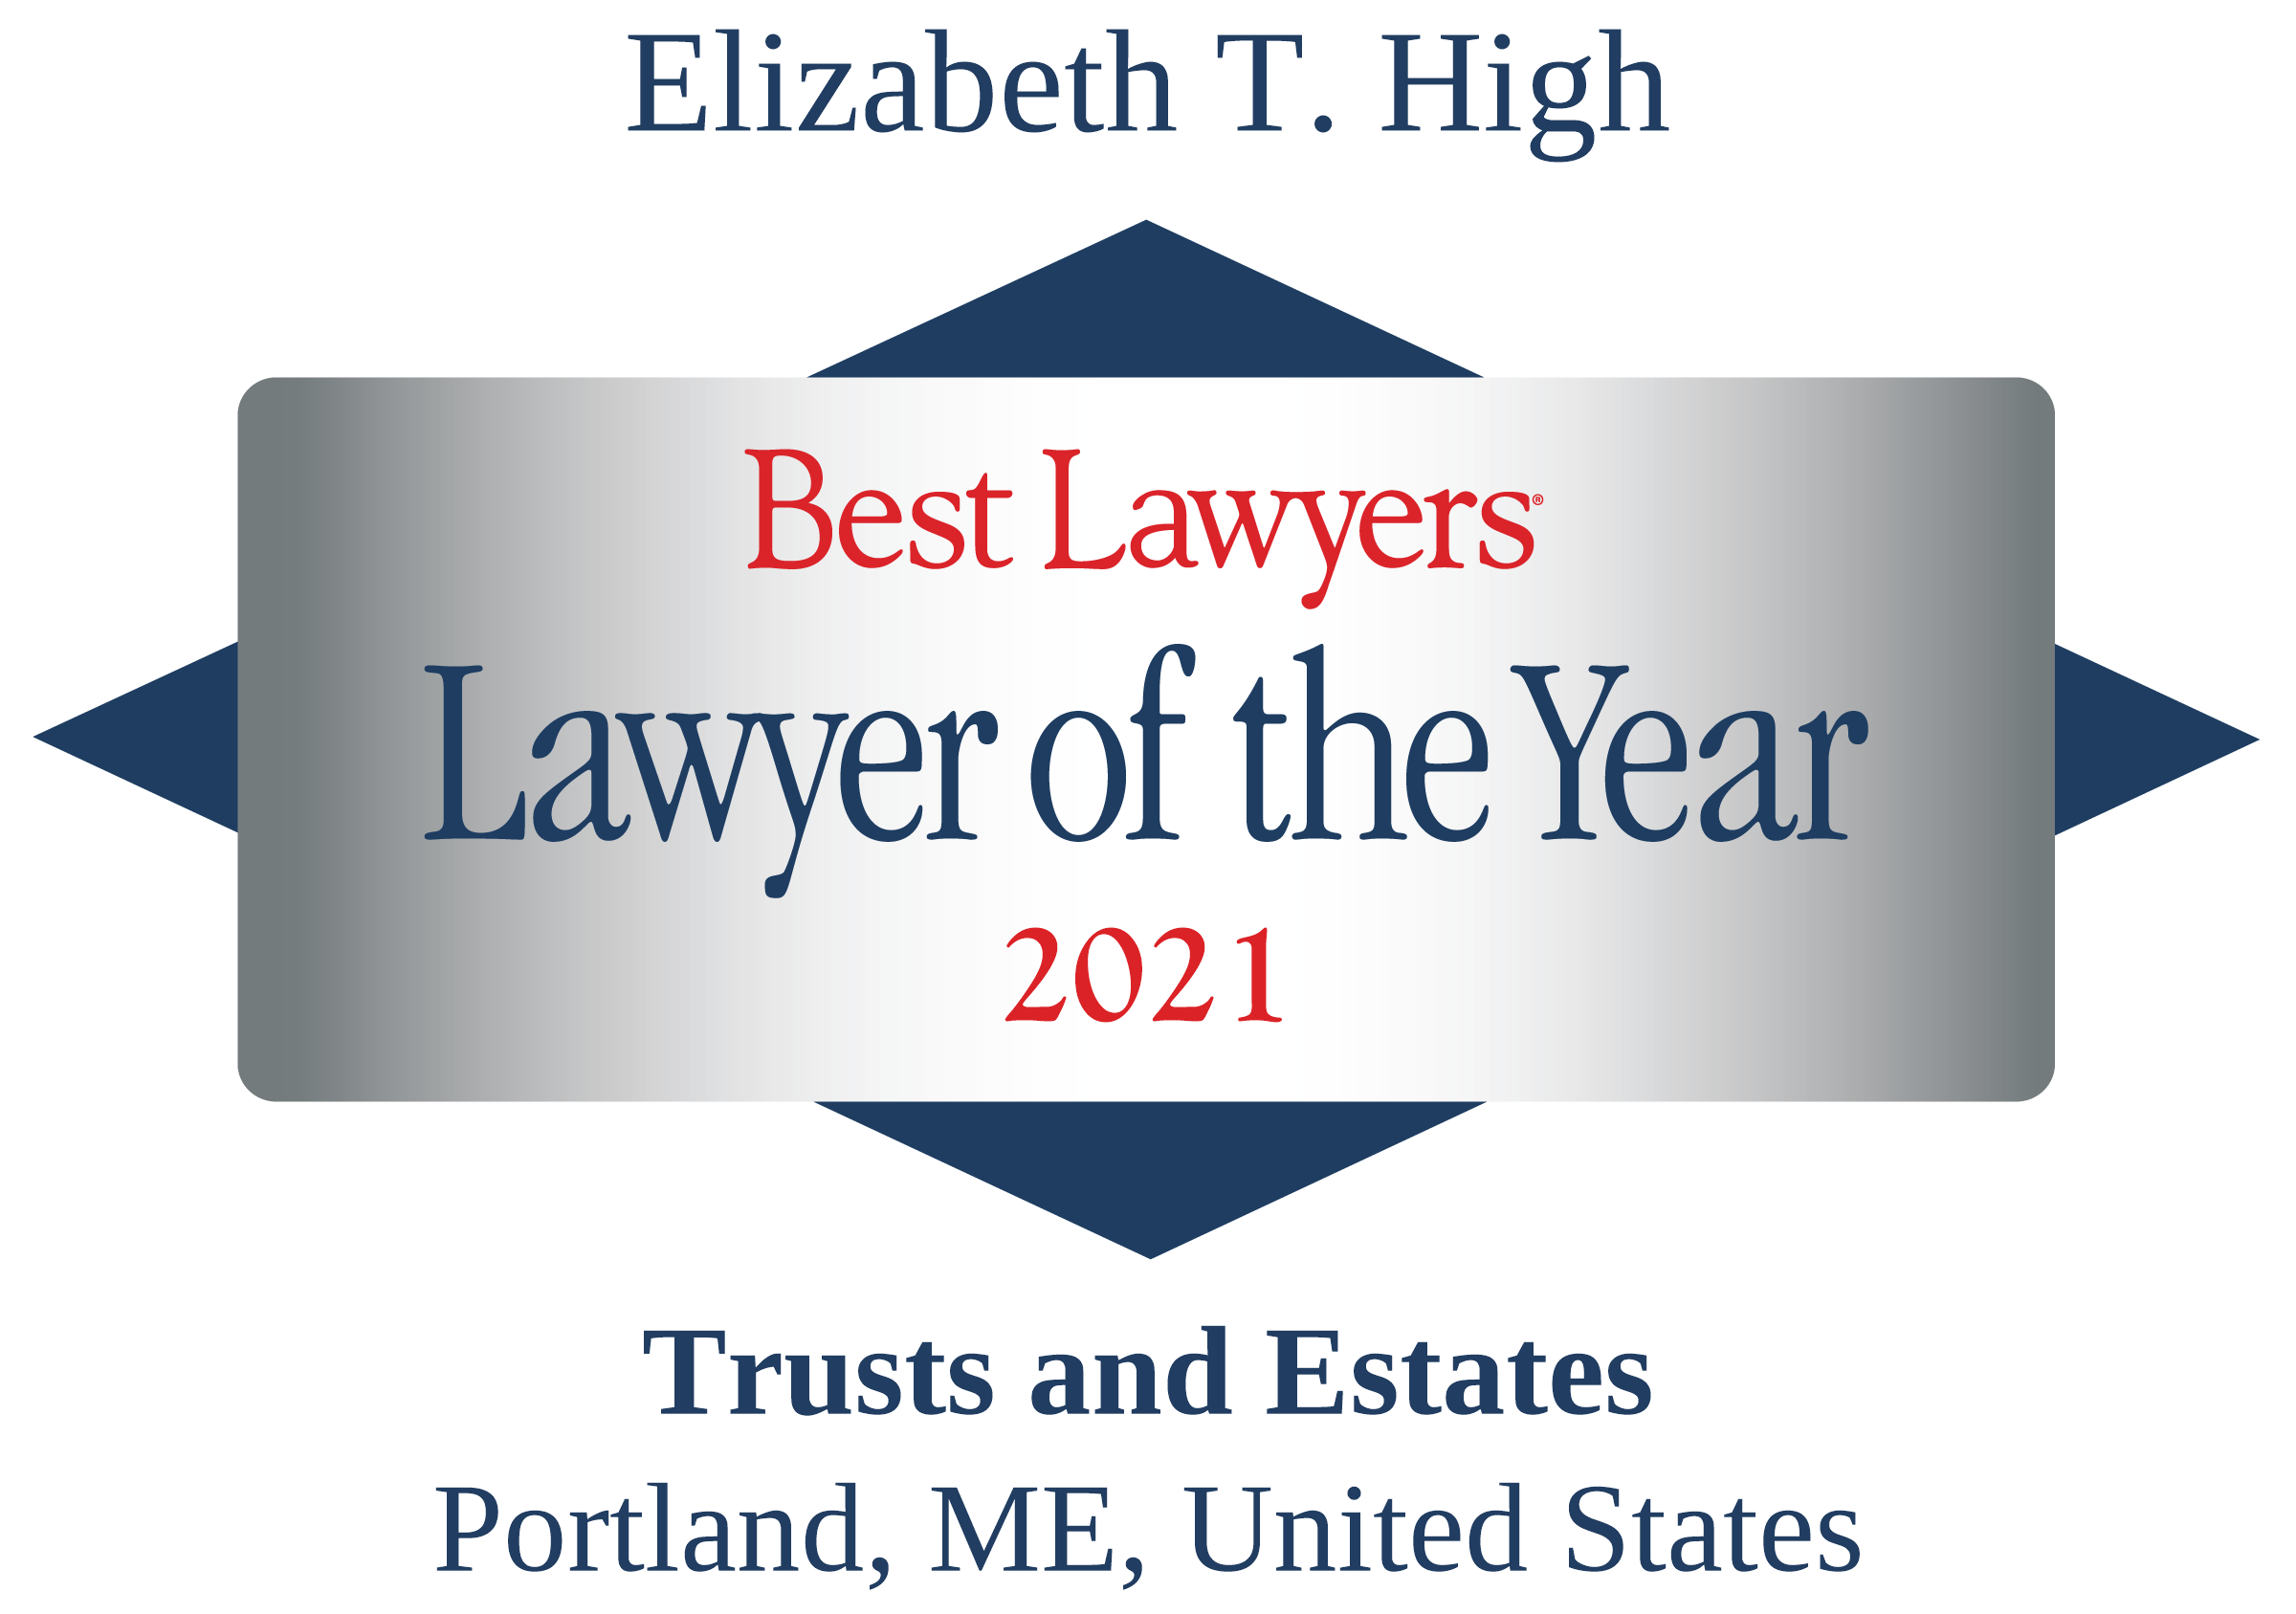 best-lawyers-__lawyer-of-the-year-eth